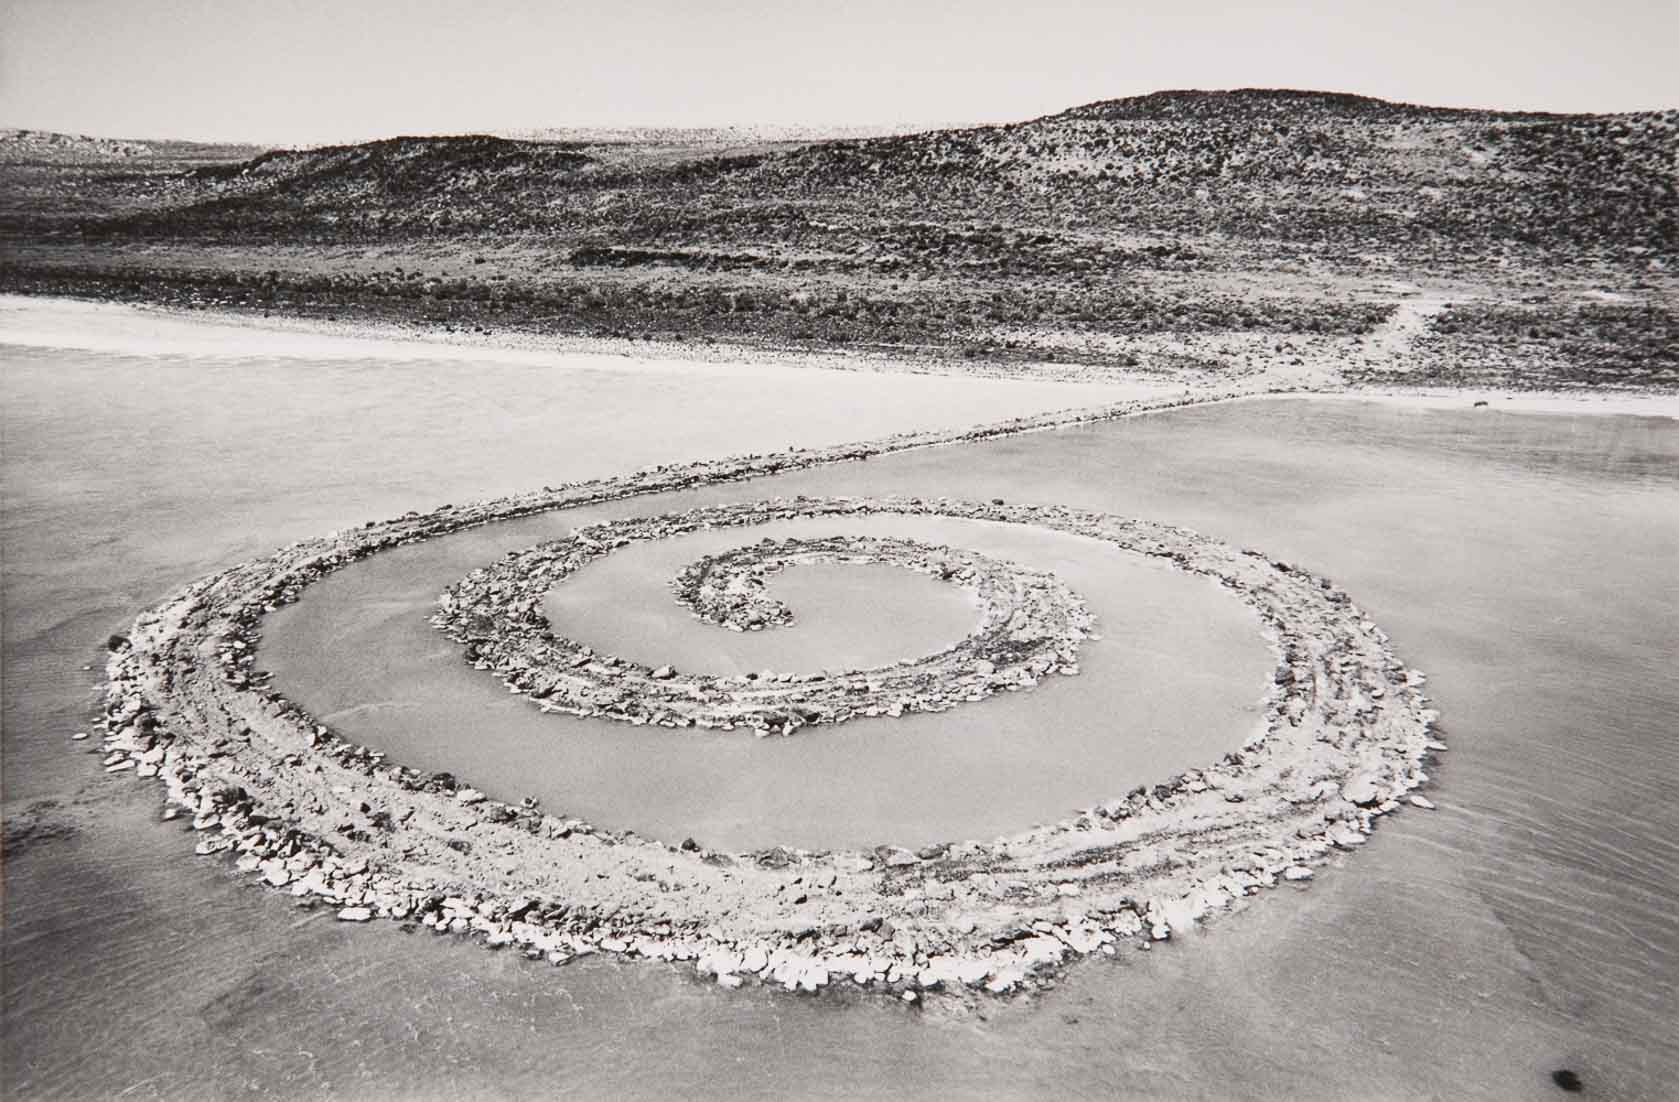 Robert Smithson, Spiral Jetty (1970). Photograph by Gianfranco Gorgoni. Art © Estate of Robert Smithson/Licensed by VAGA, New York